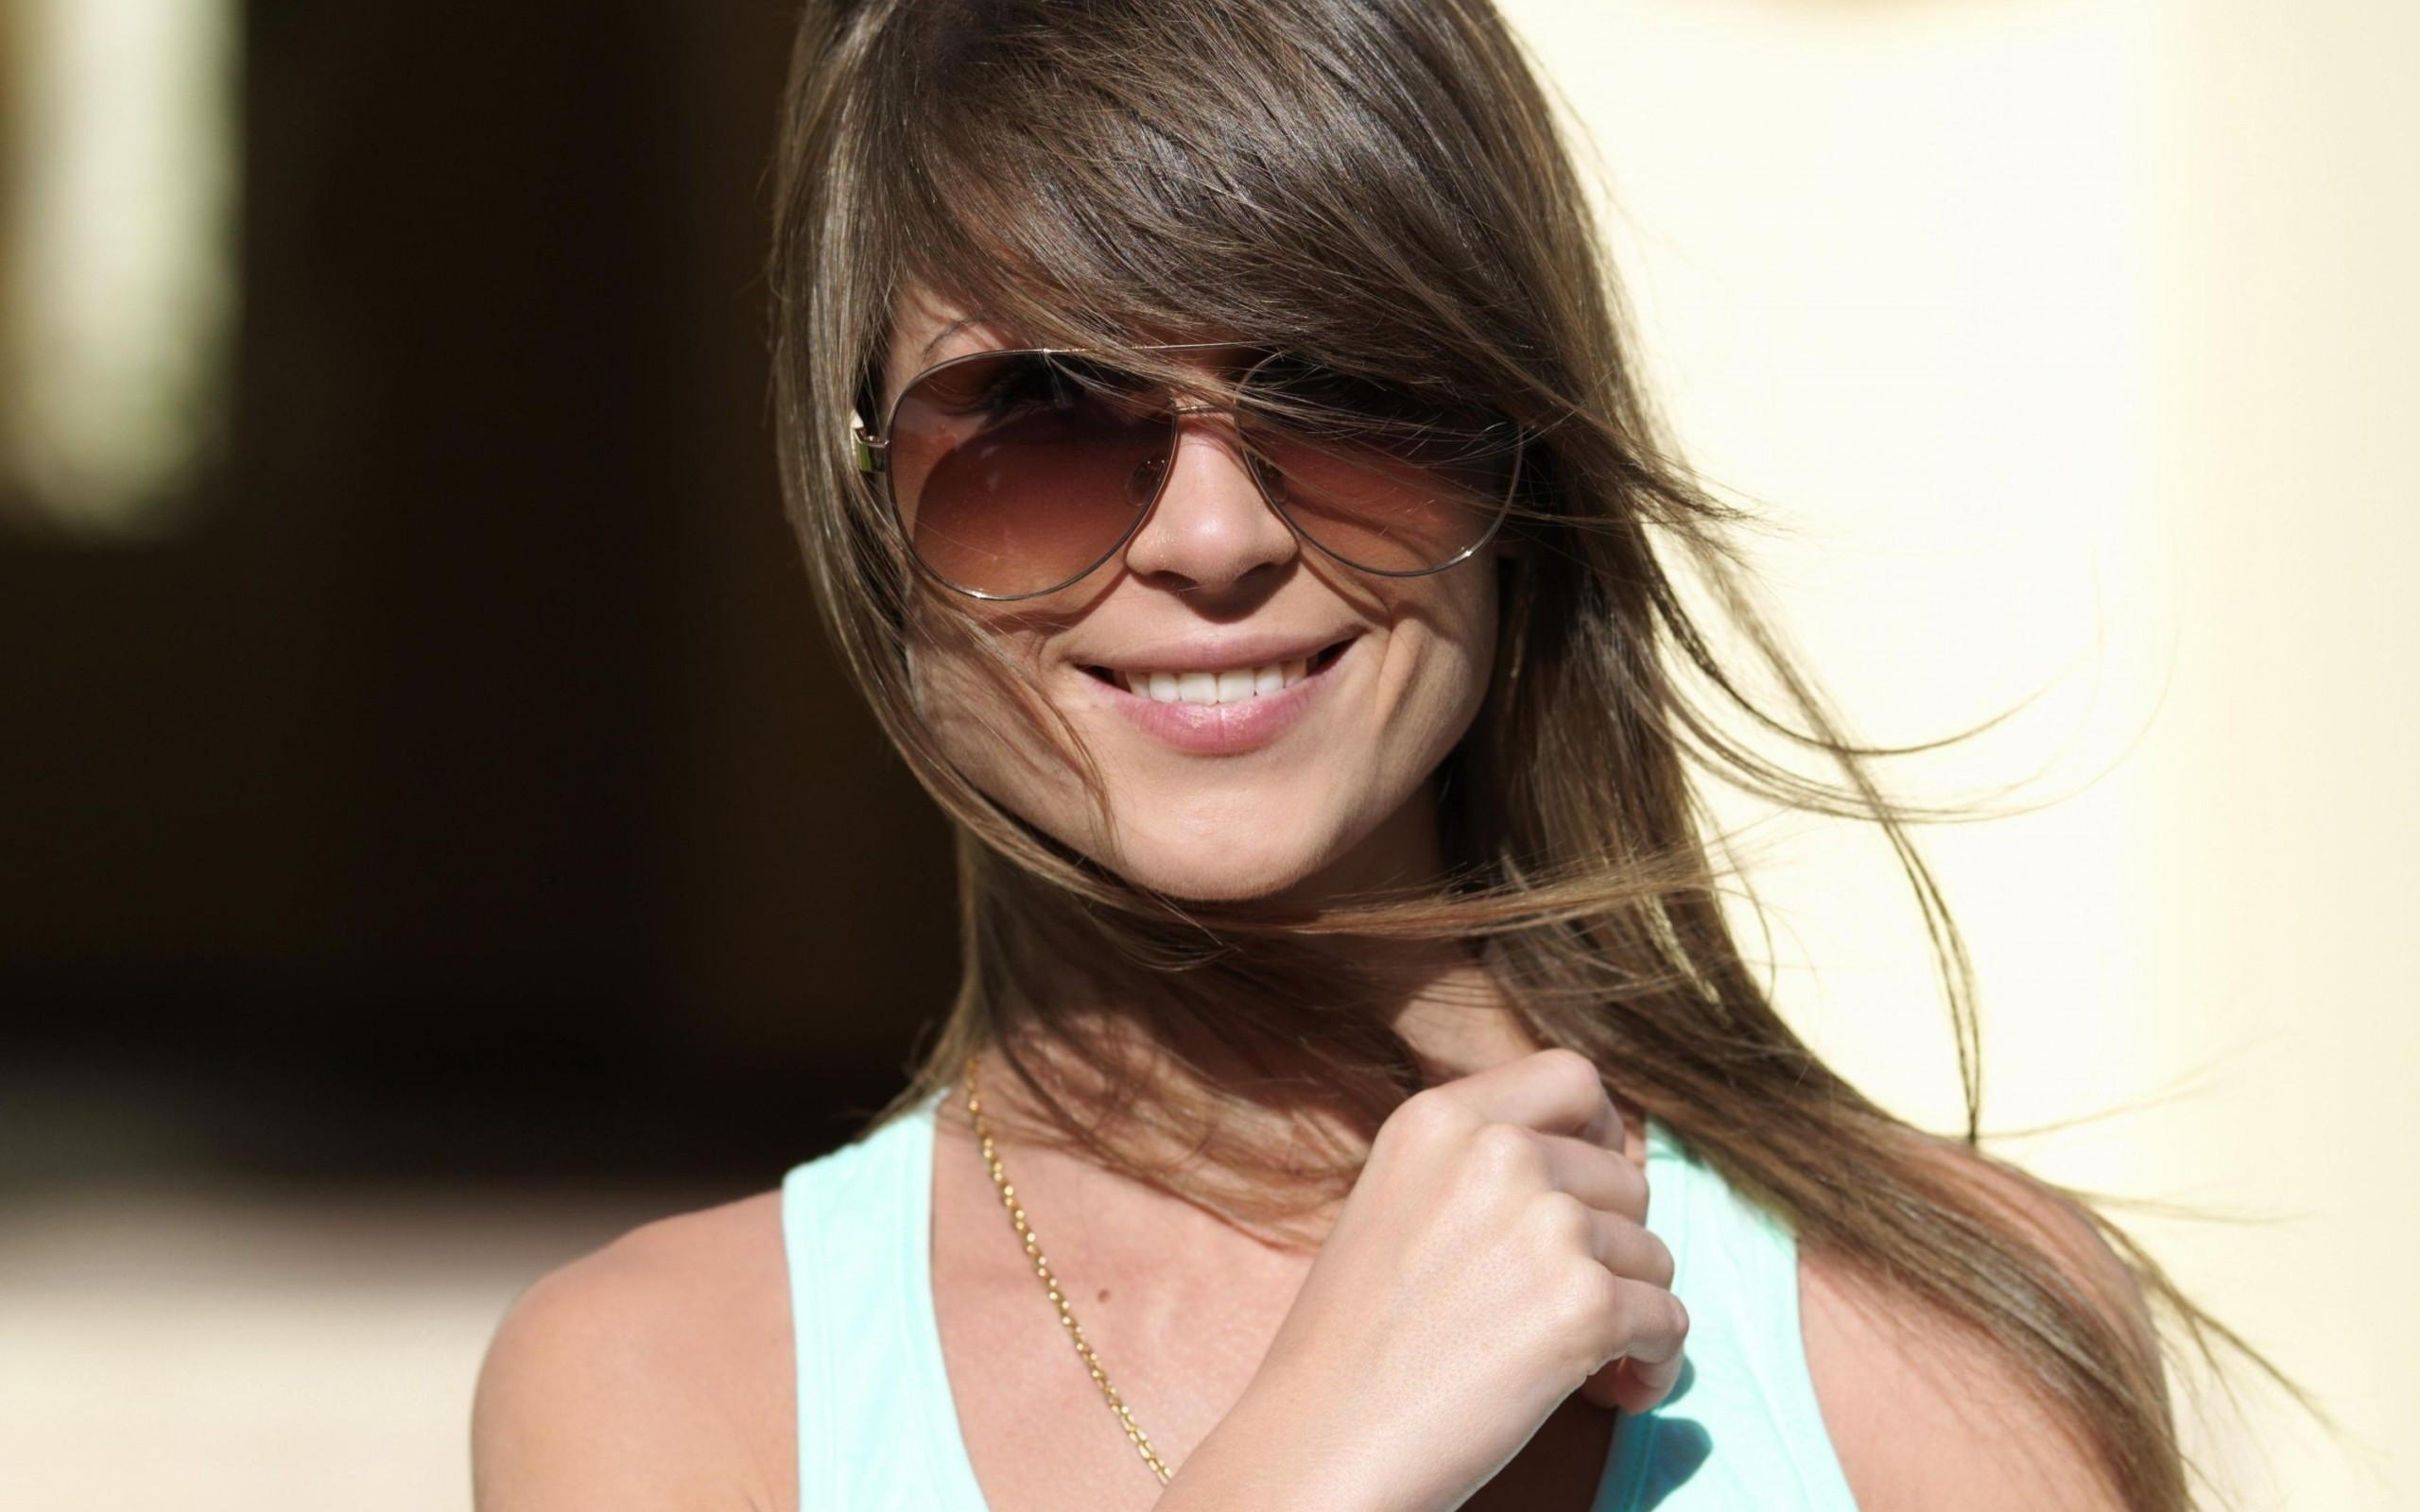 Women Women With Shades Smiling Brunette 2560x1600